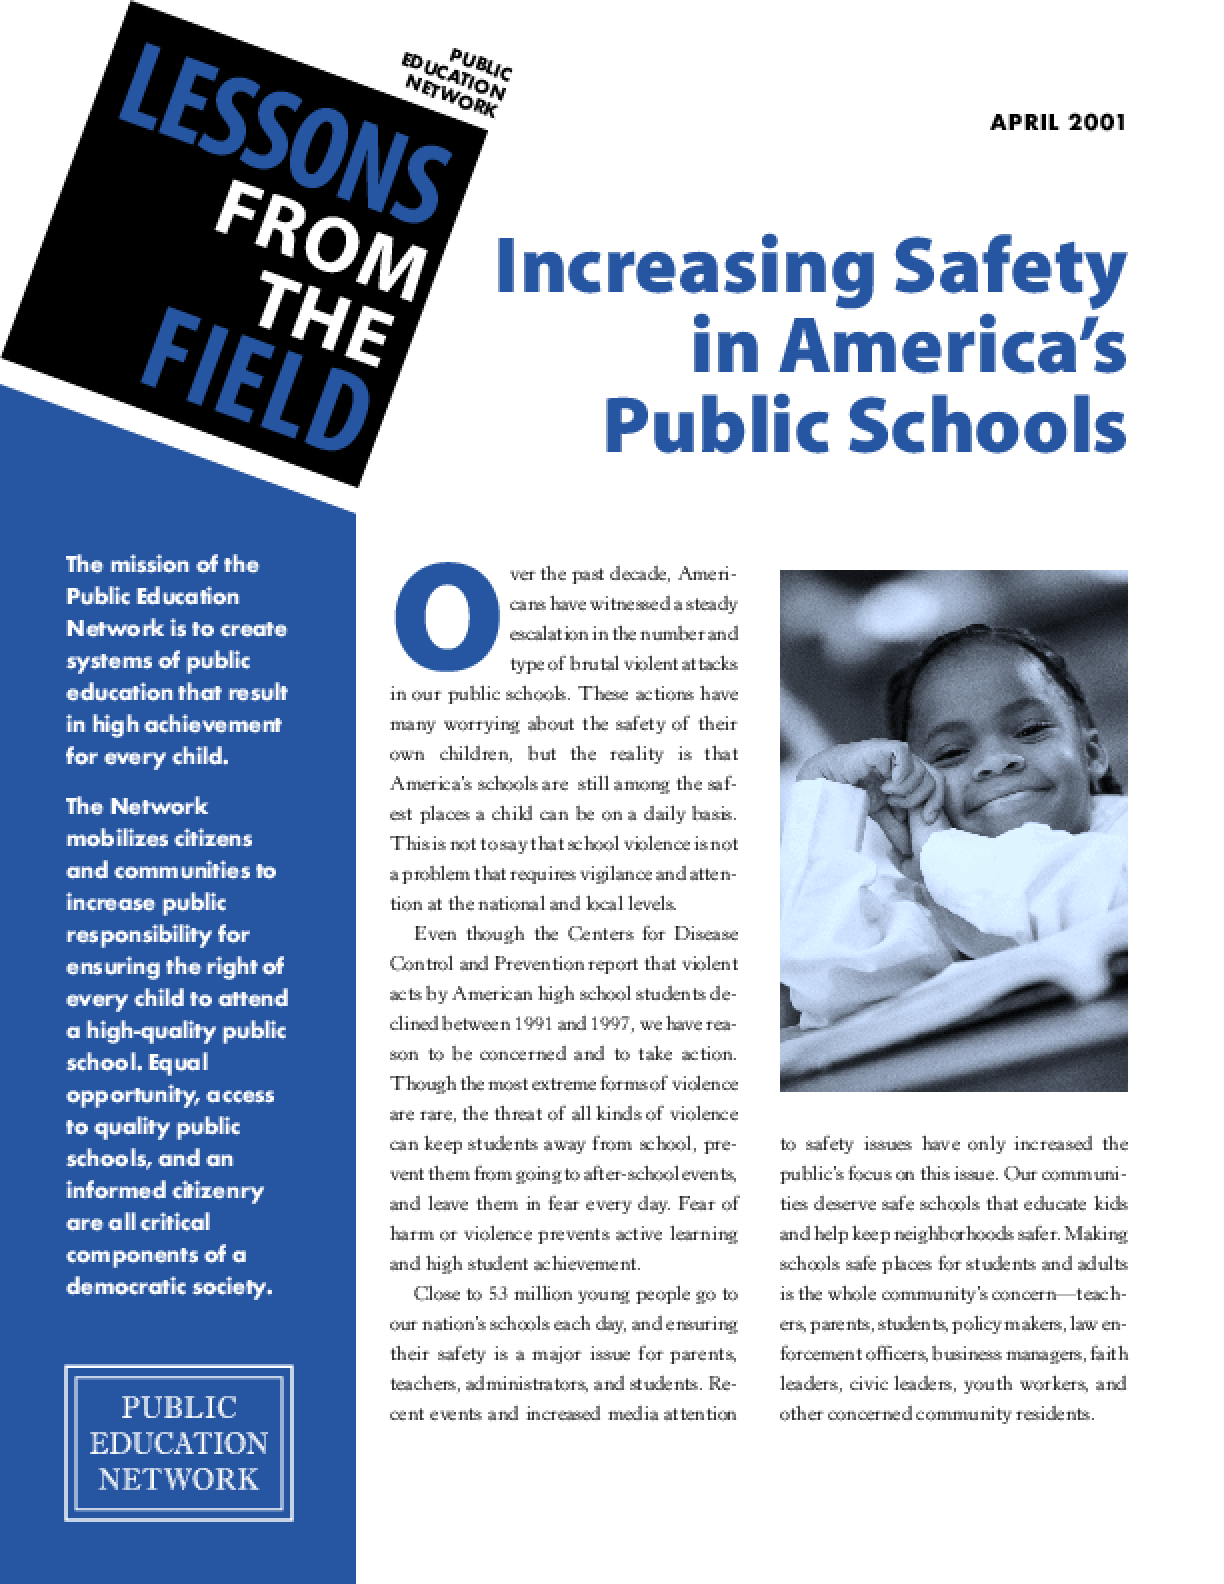 Increasing Safety in America's Public Schools